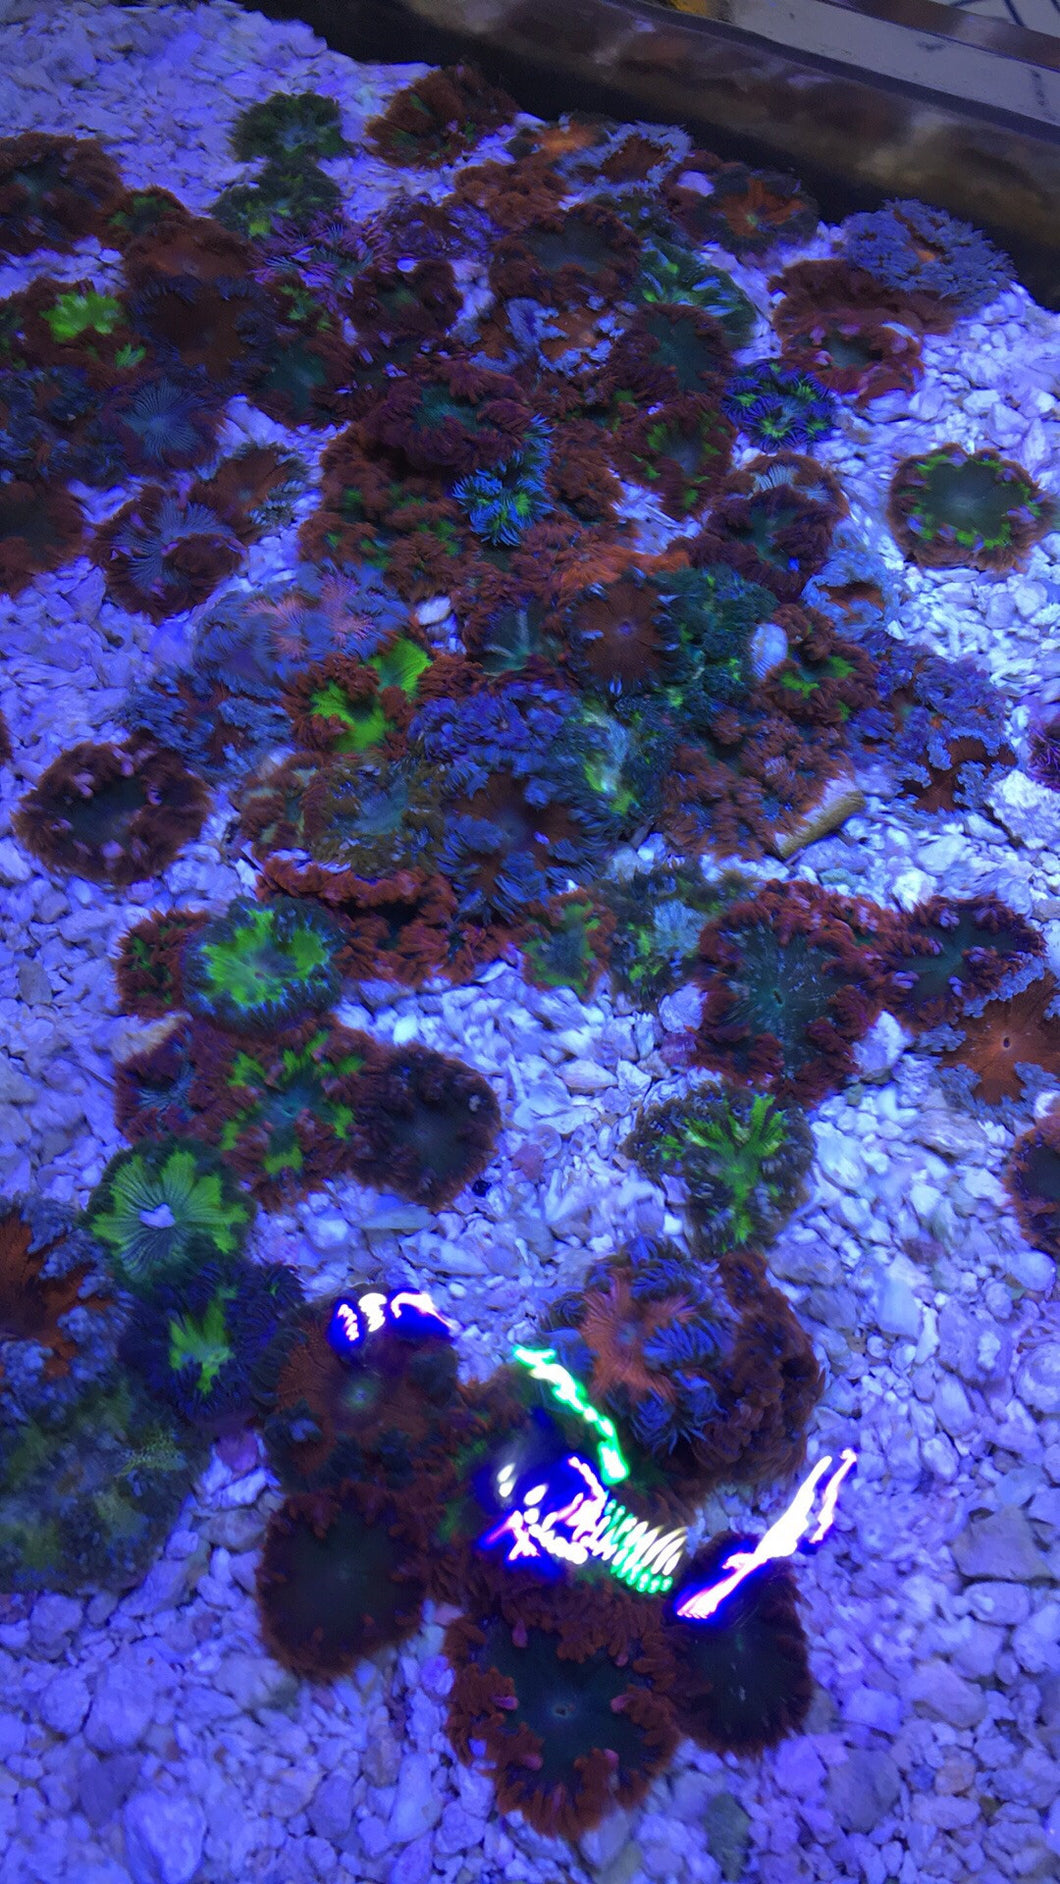 Freshwater fish store near me - Ultra Rock Flower Anemones Cherry Picked For Your Order